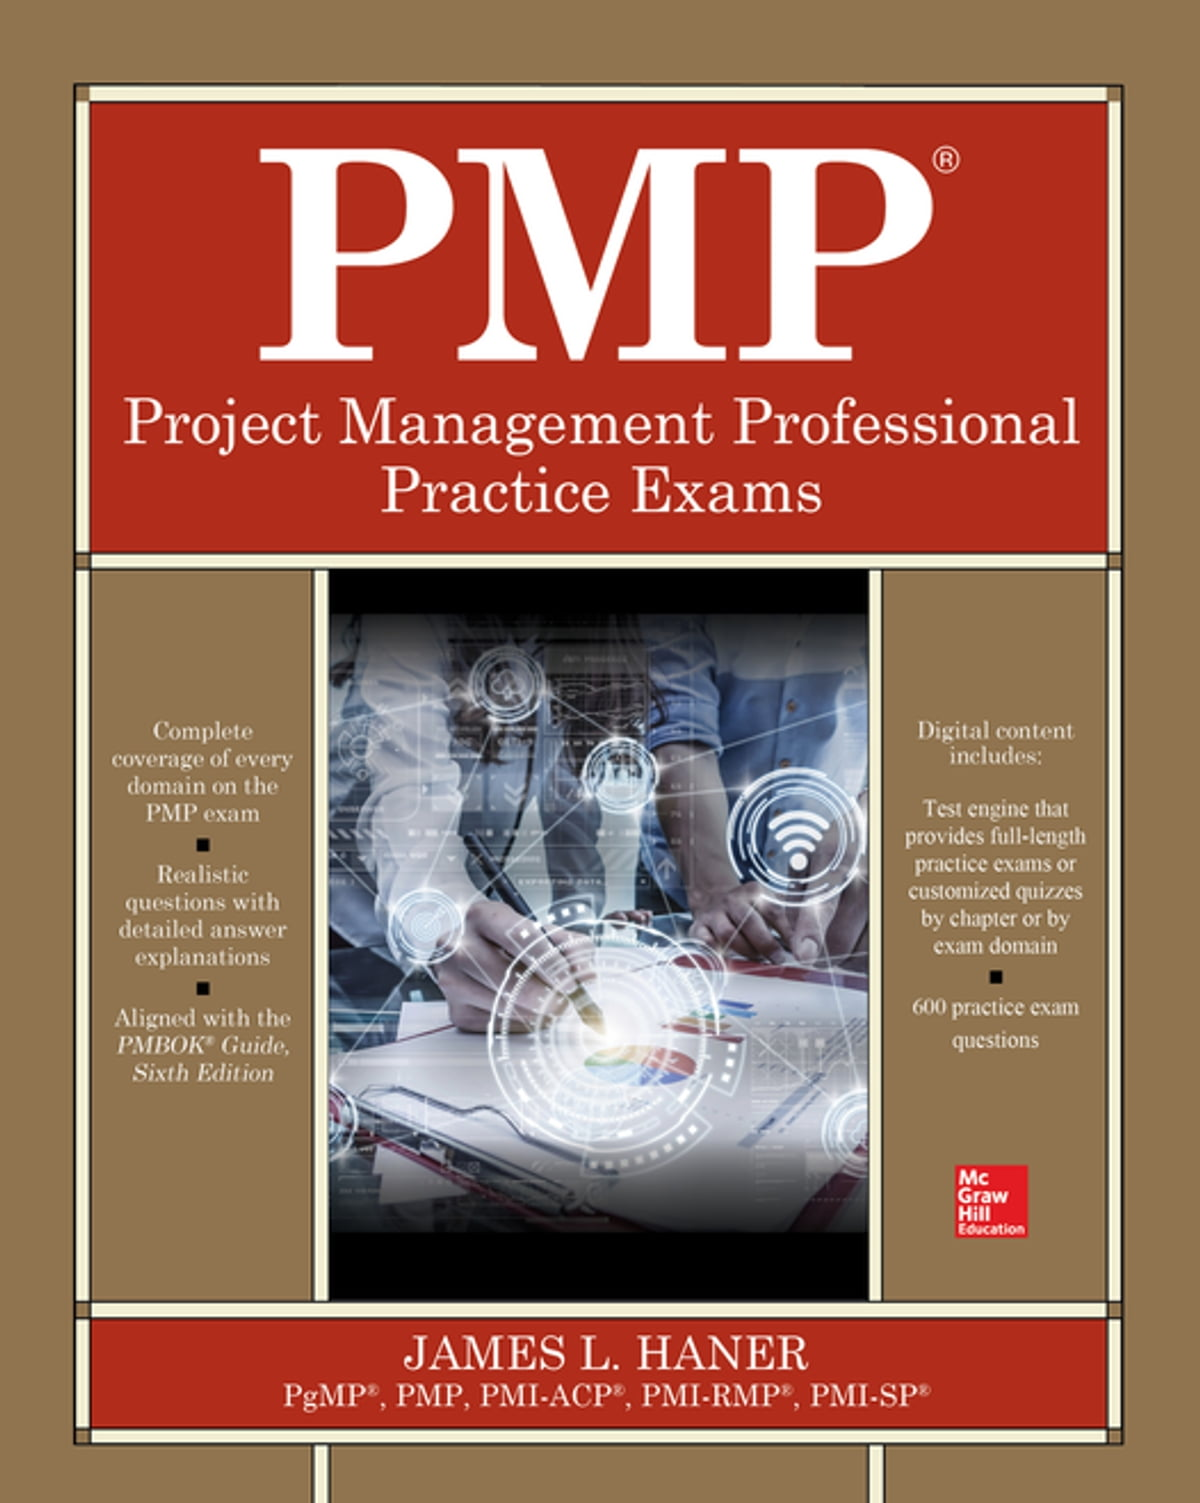 PMP Project Management Professional Practice Exams eBook by James L. Haner  - 9781260134810 | Rakuten Kobo